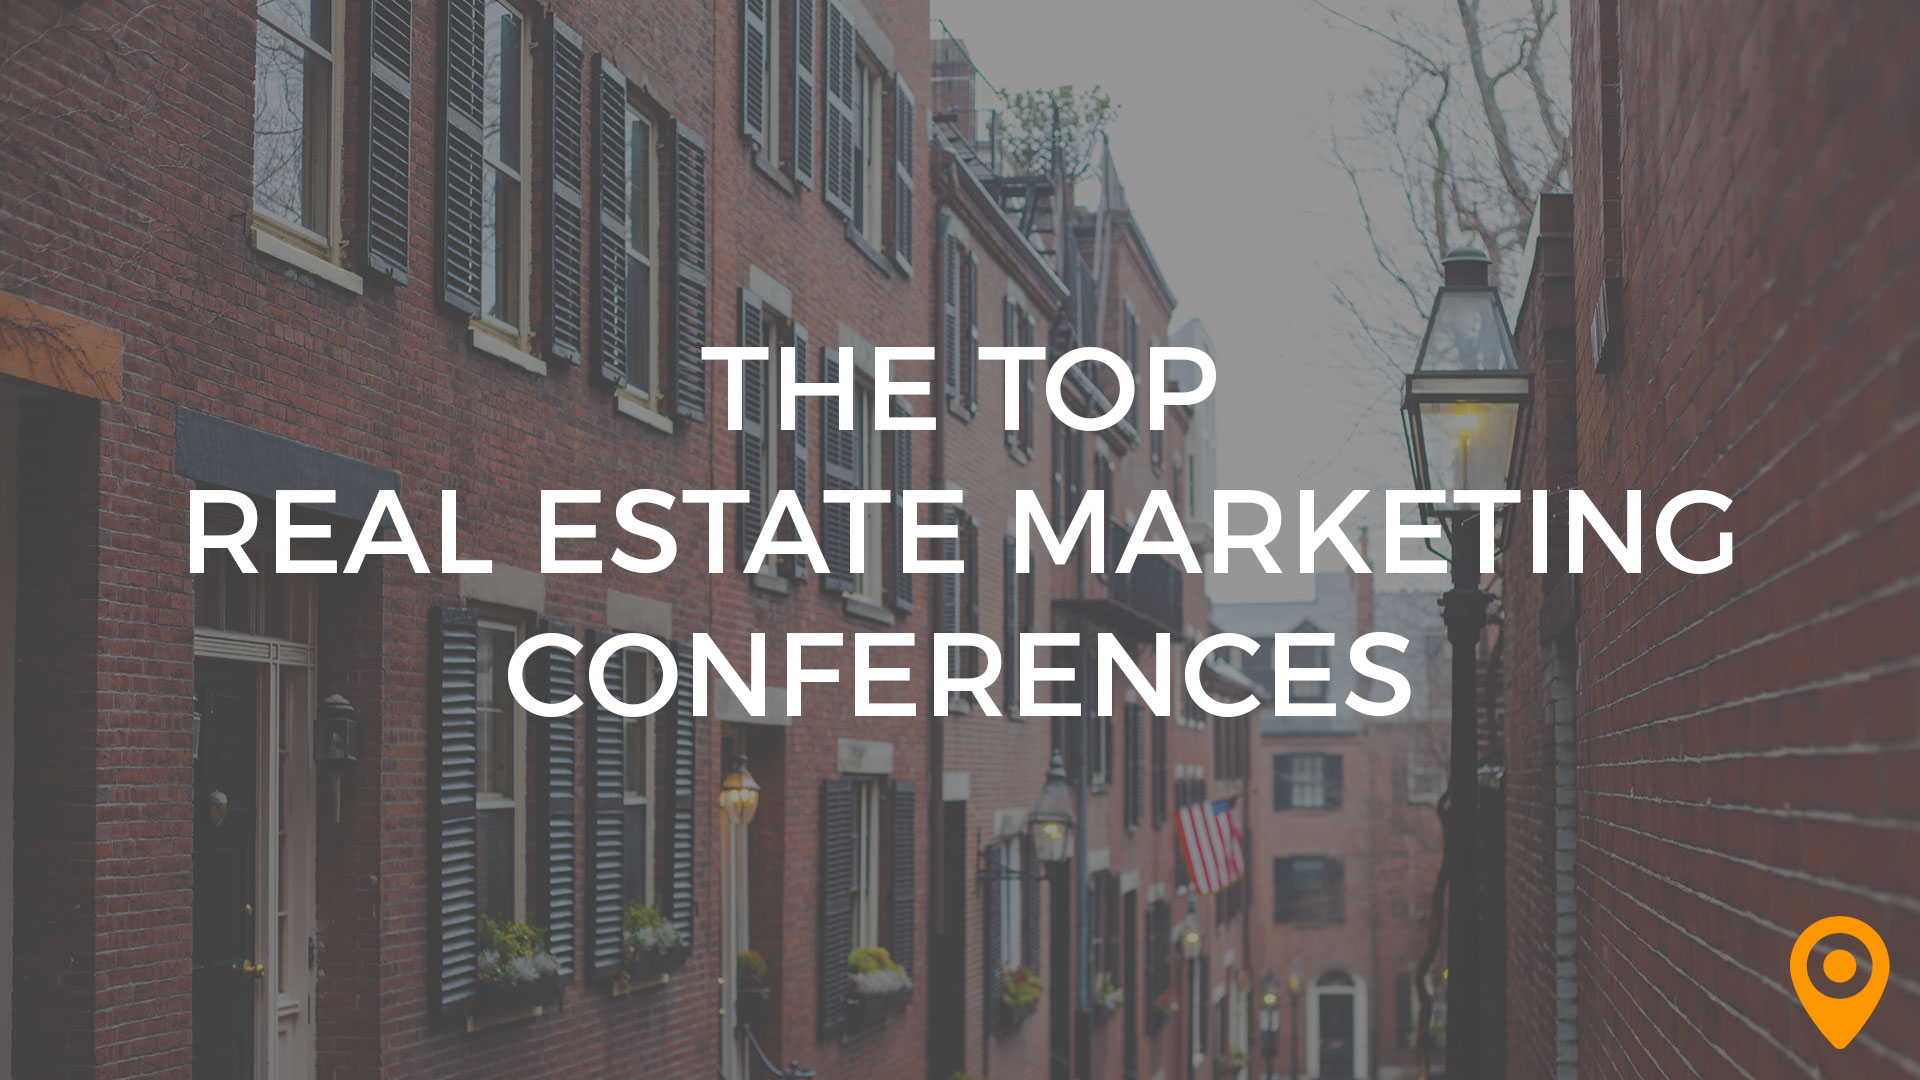 Top Real Estate Marketing Conferences